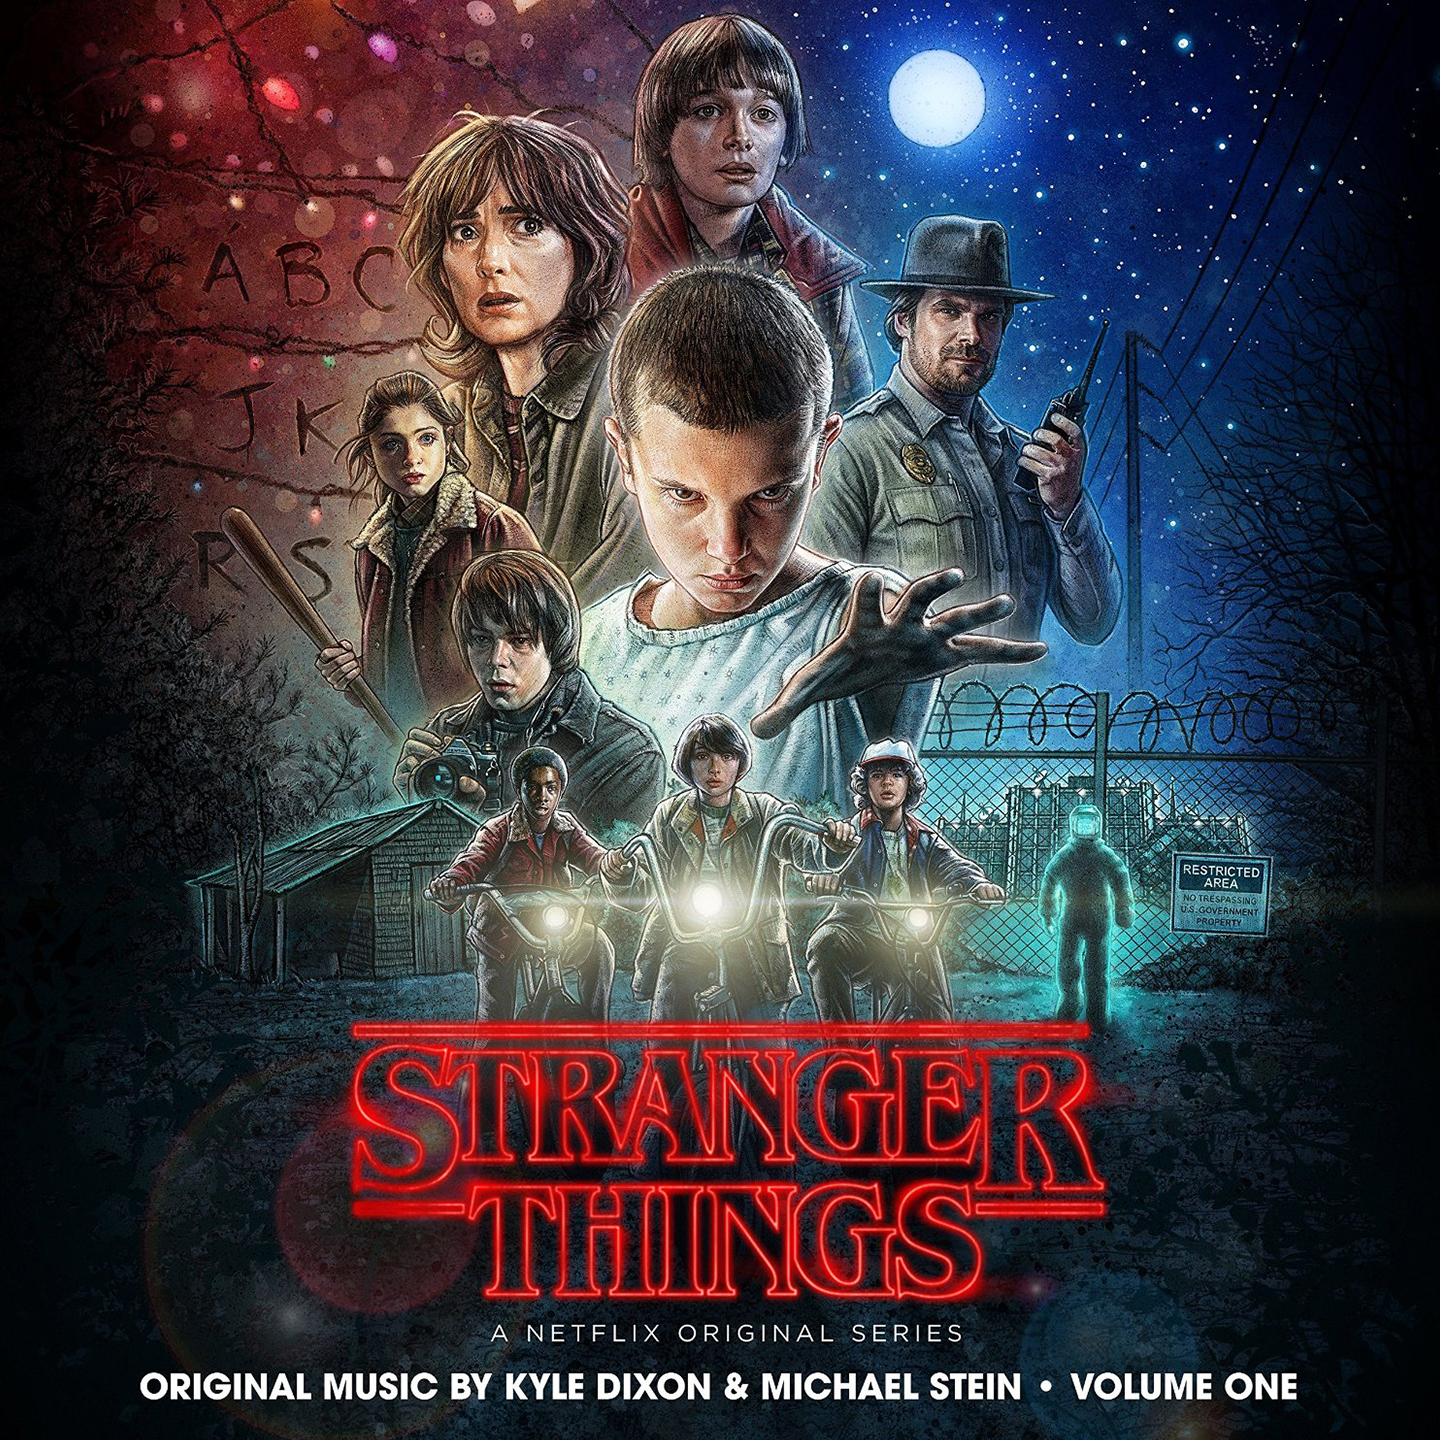 survive-stranger-things-vol-1